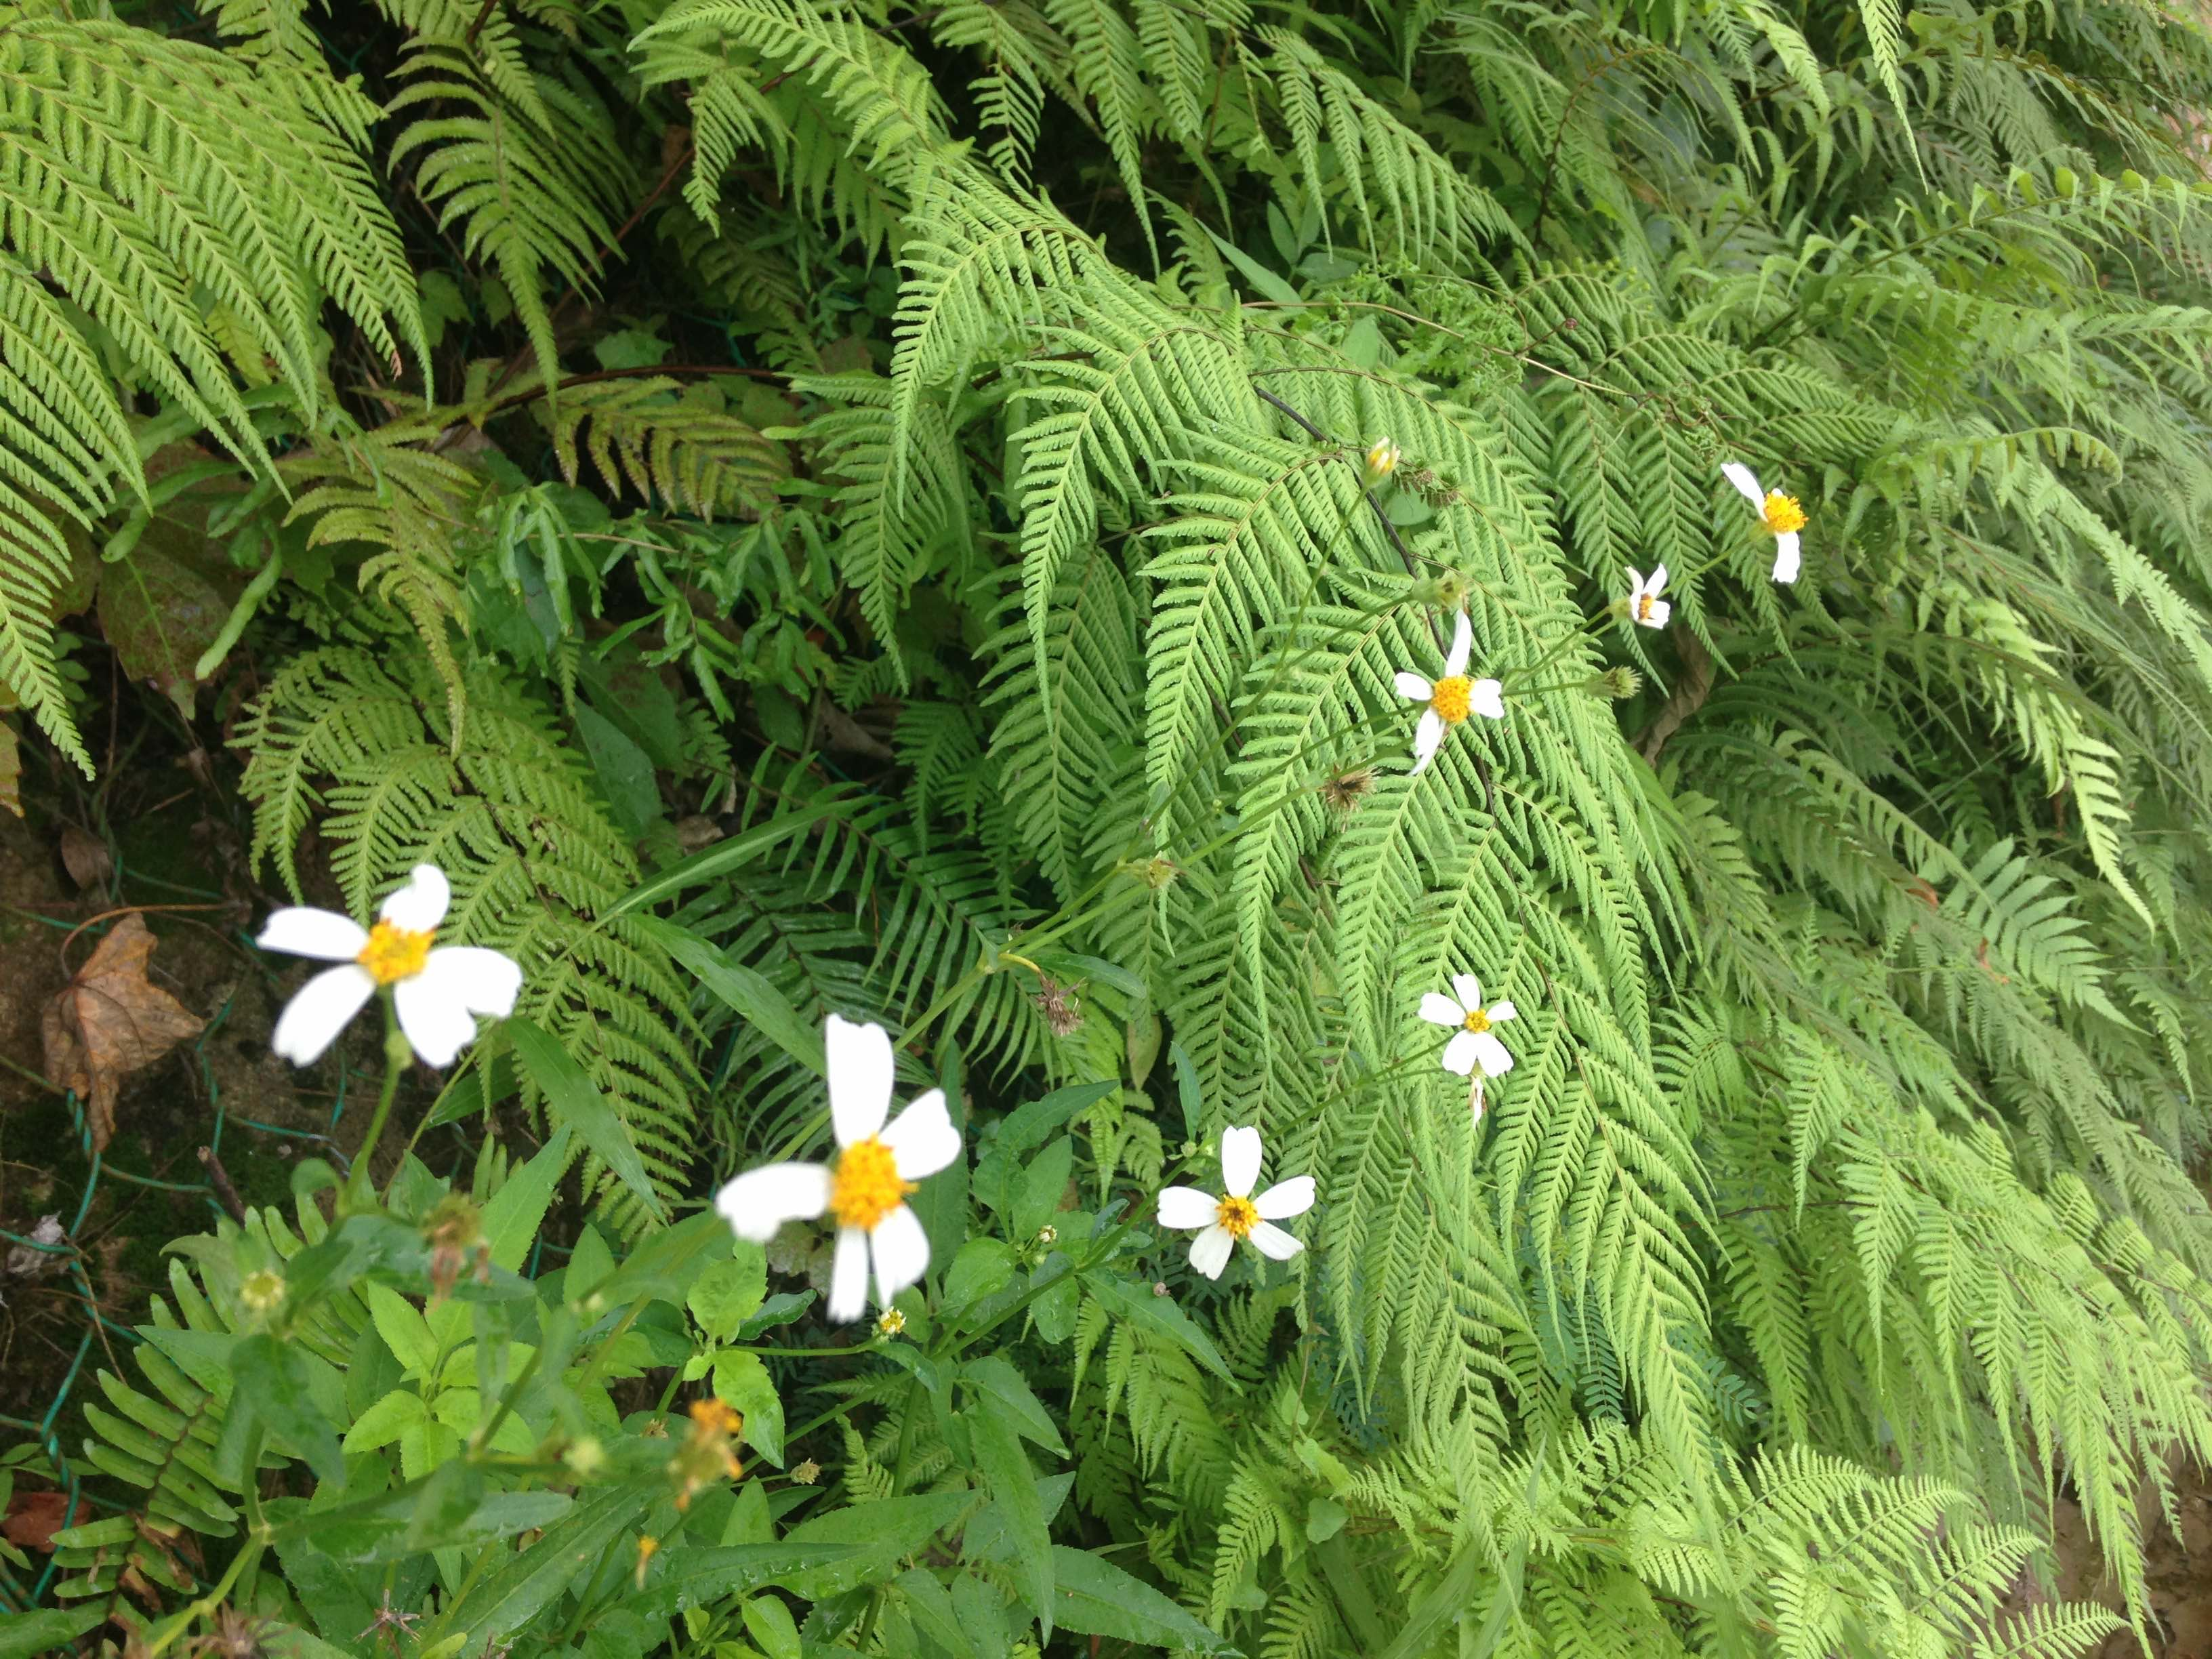 Daisies and ferns.